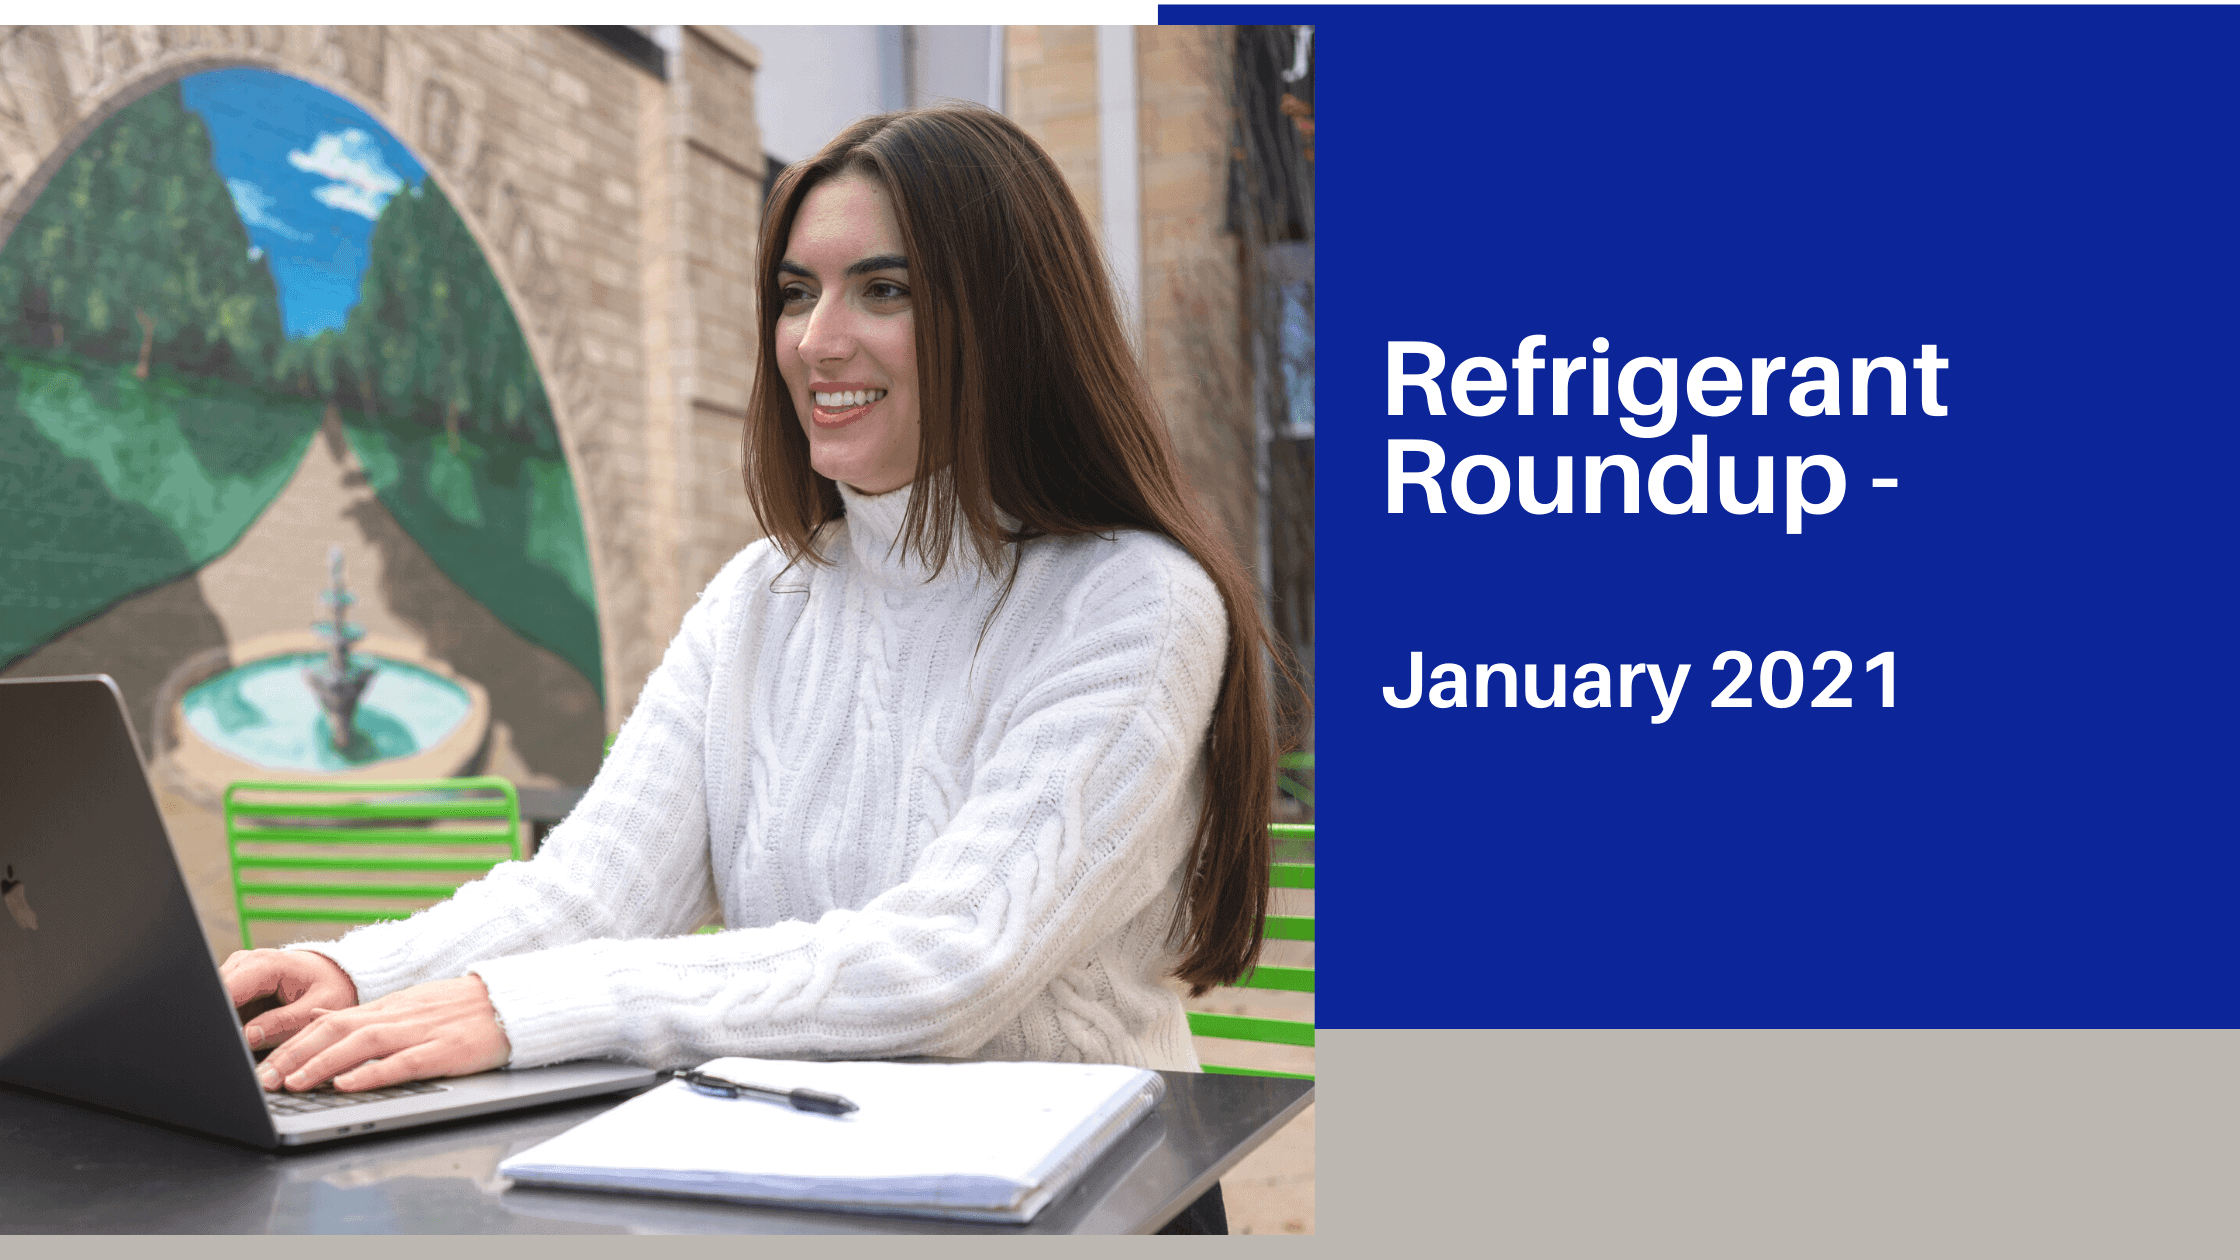 Refrigerant Roundup for January 2021